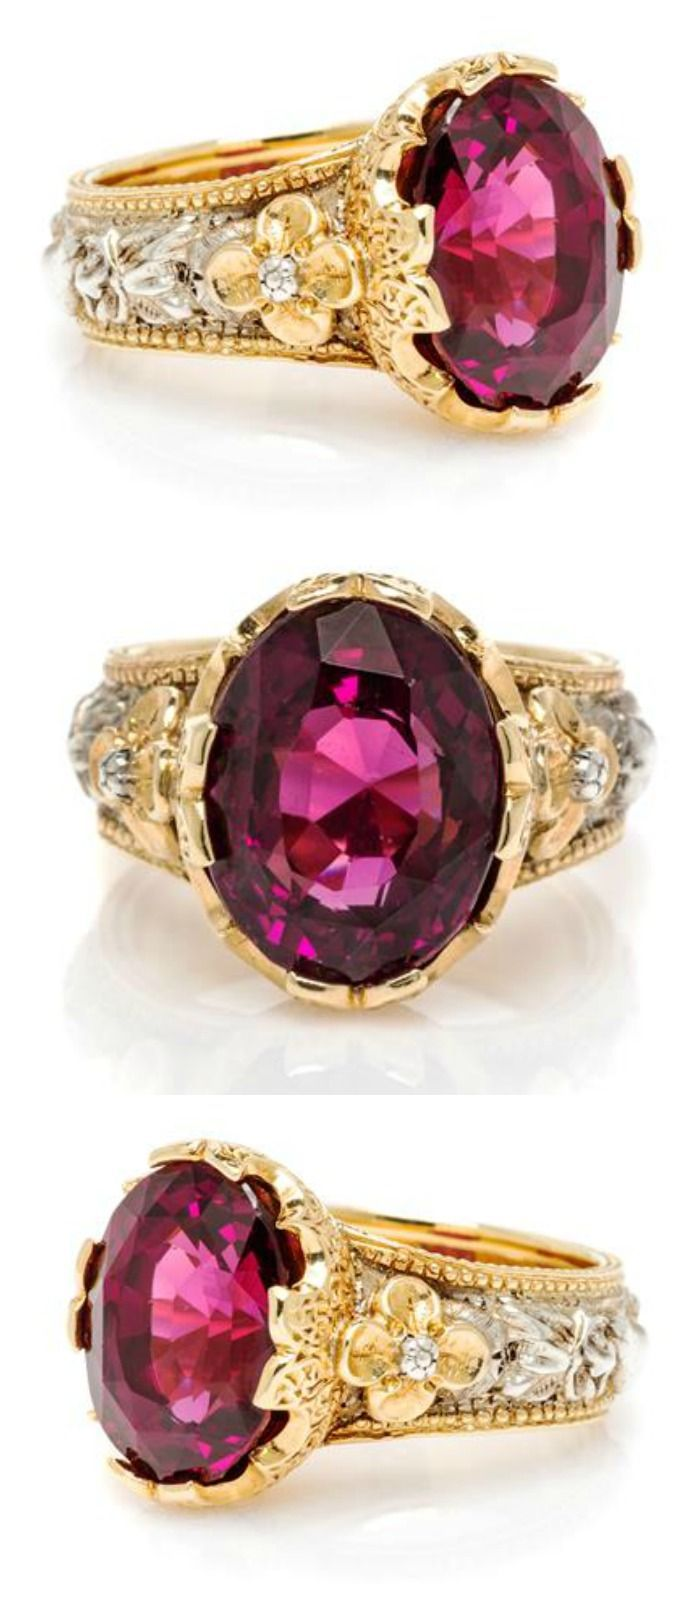 What a beauty! I love this rhodolite garnet ring by Frederico Buccellati - especially the silver and gold designs around the band.